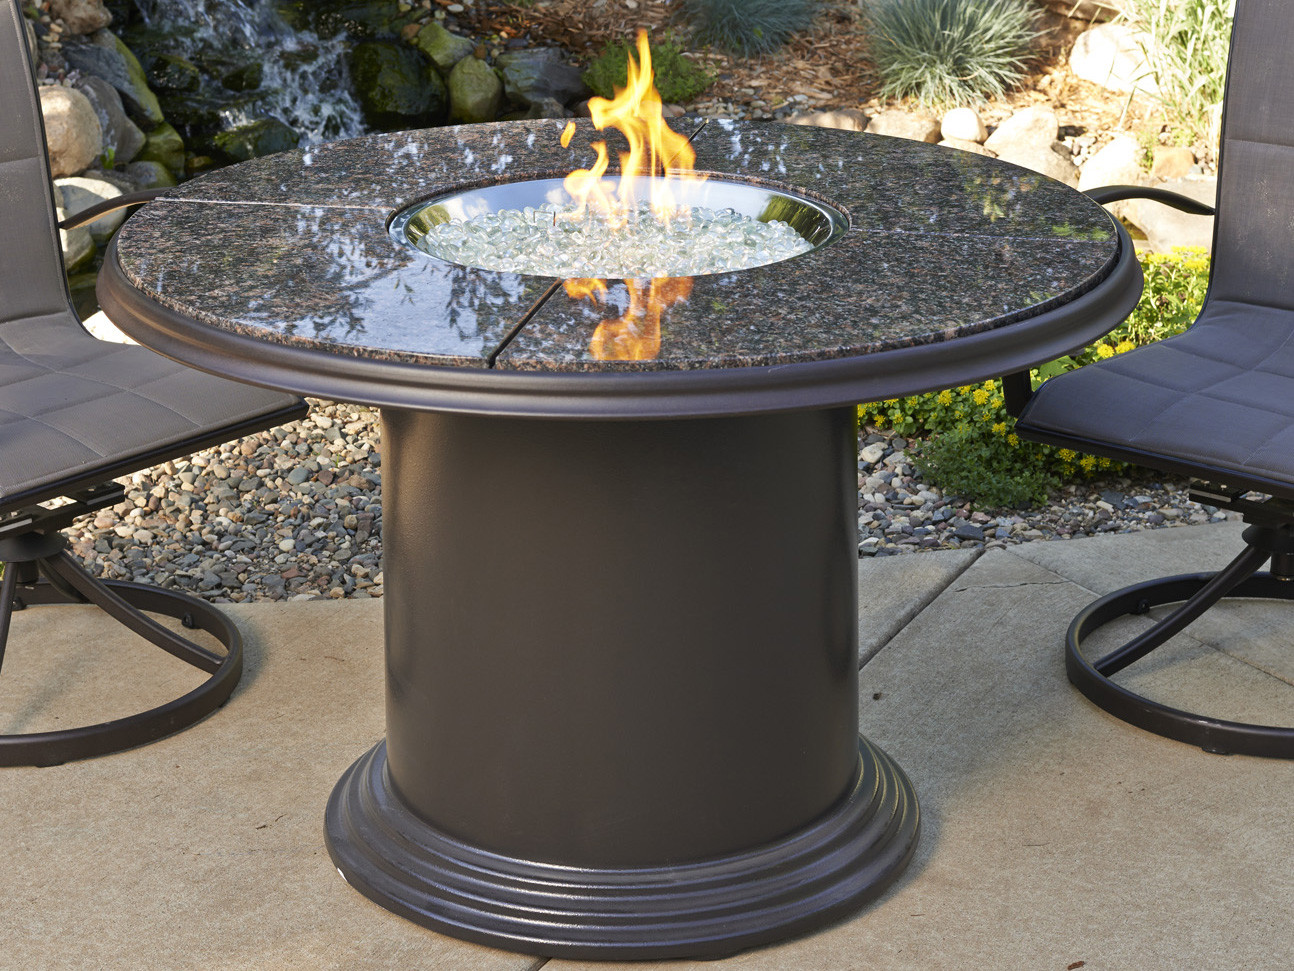 Best ideas about Fire Pit Dining Table . Save or Pin Outdoor GreatRoom Colonial Fiberglass 48 Round Crystal Now.